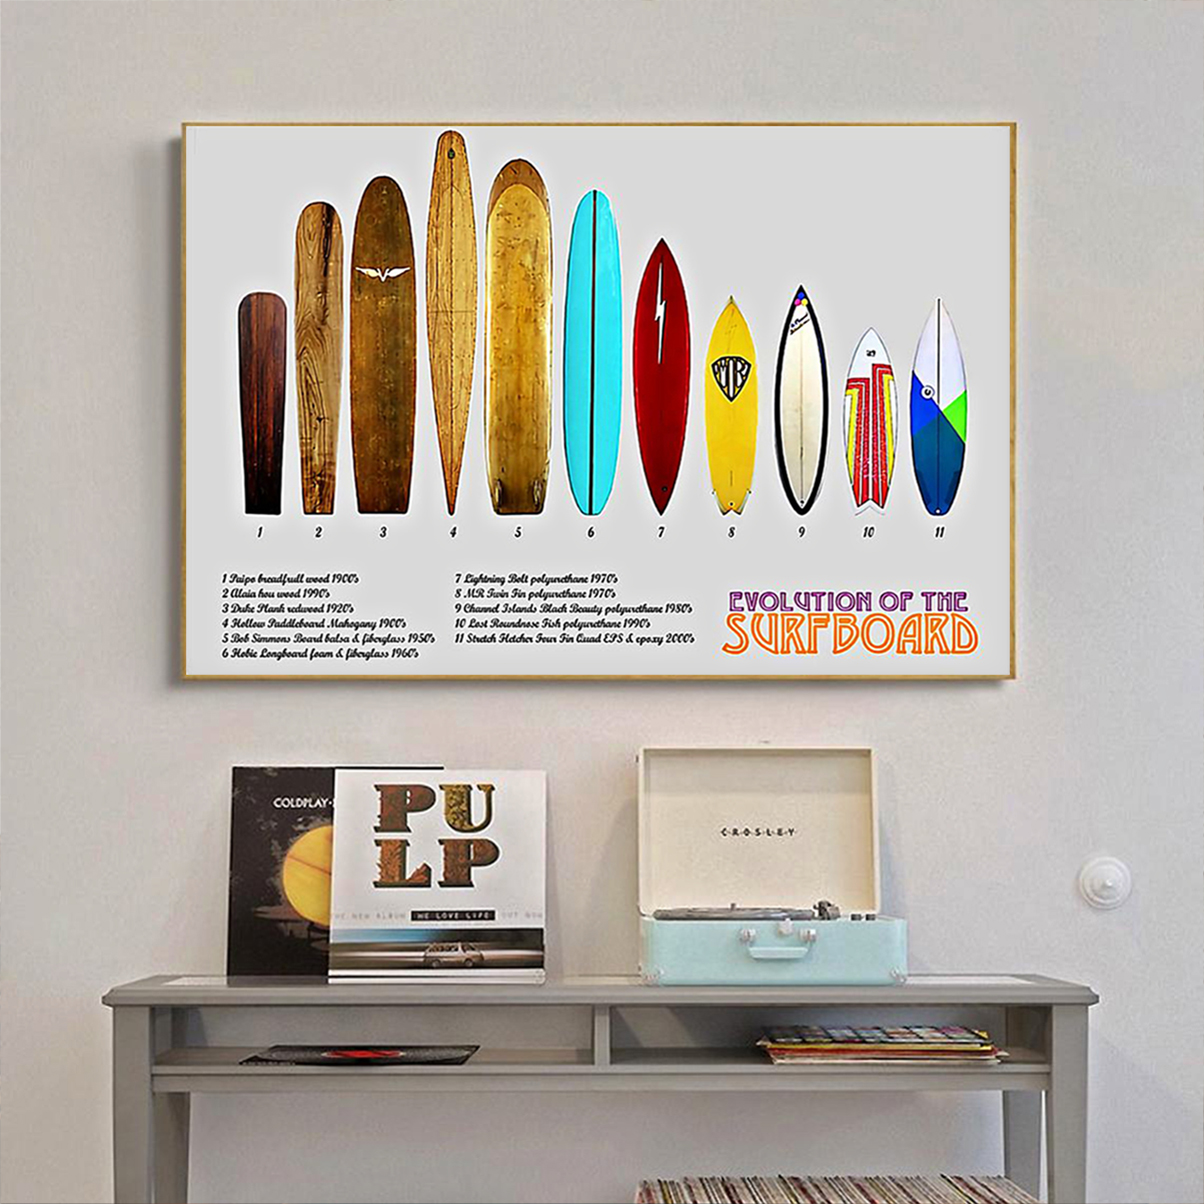 Evolution of the surfboard surfing poster